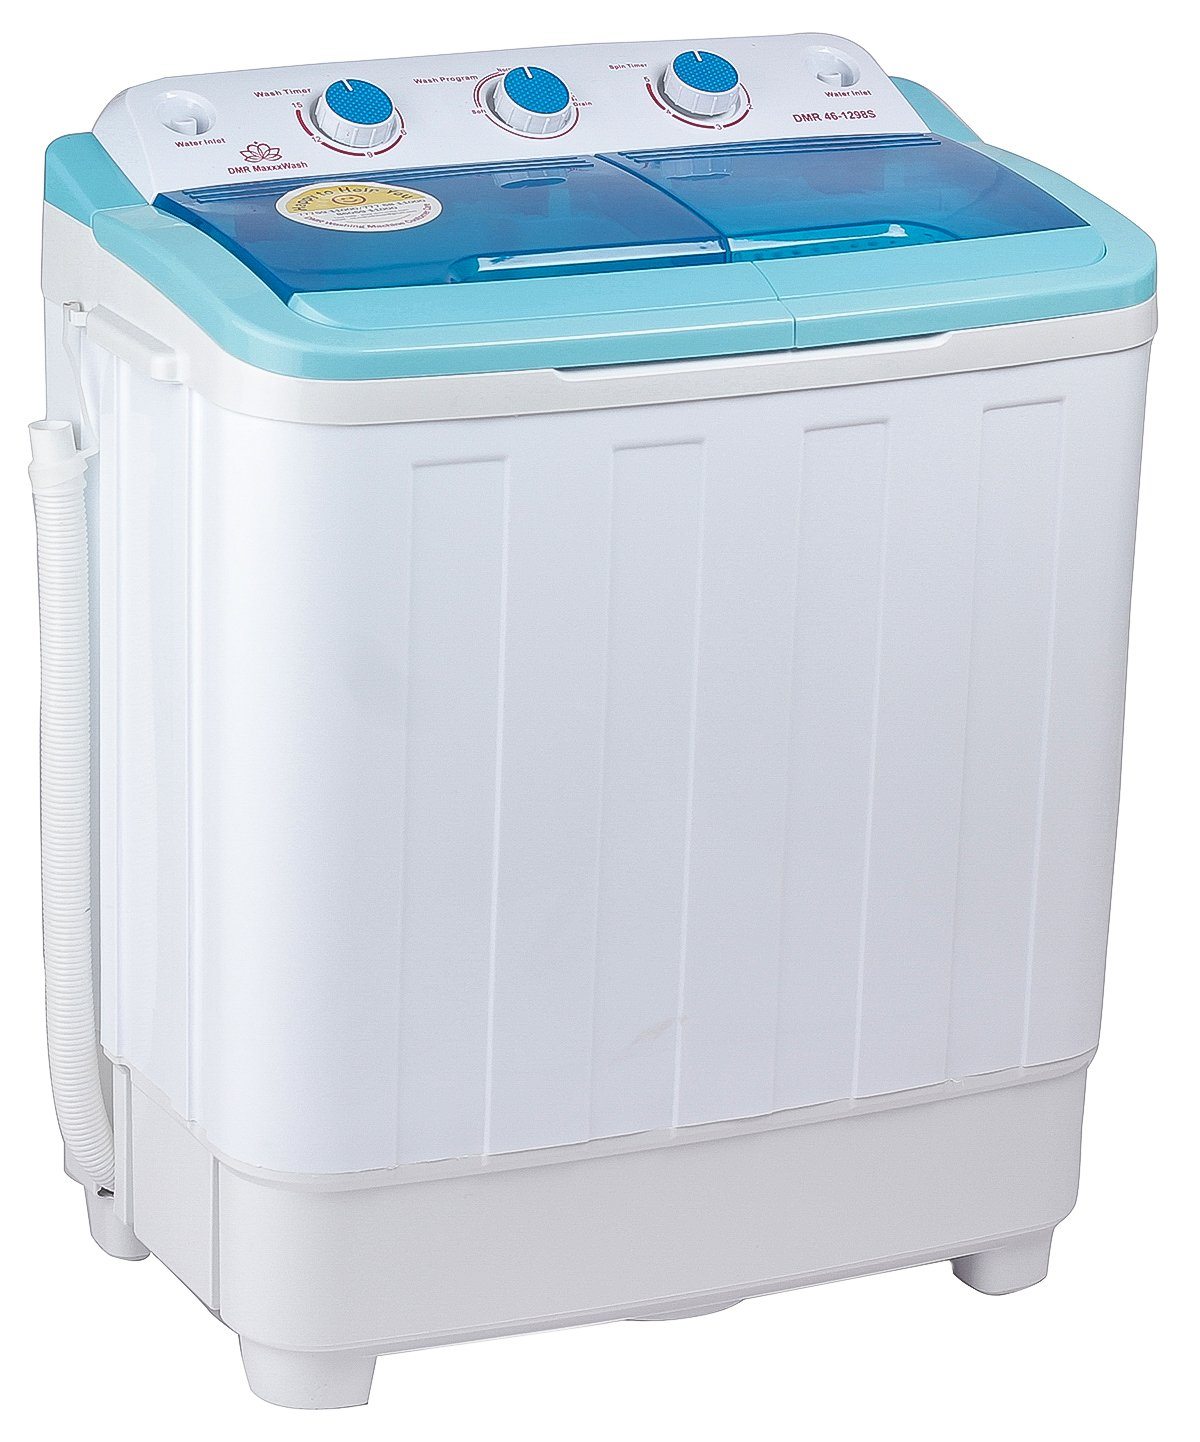 DMR 4.6 kg Semi-Automatic Top Loading Washing Machine (46-1298S, Blue)